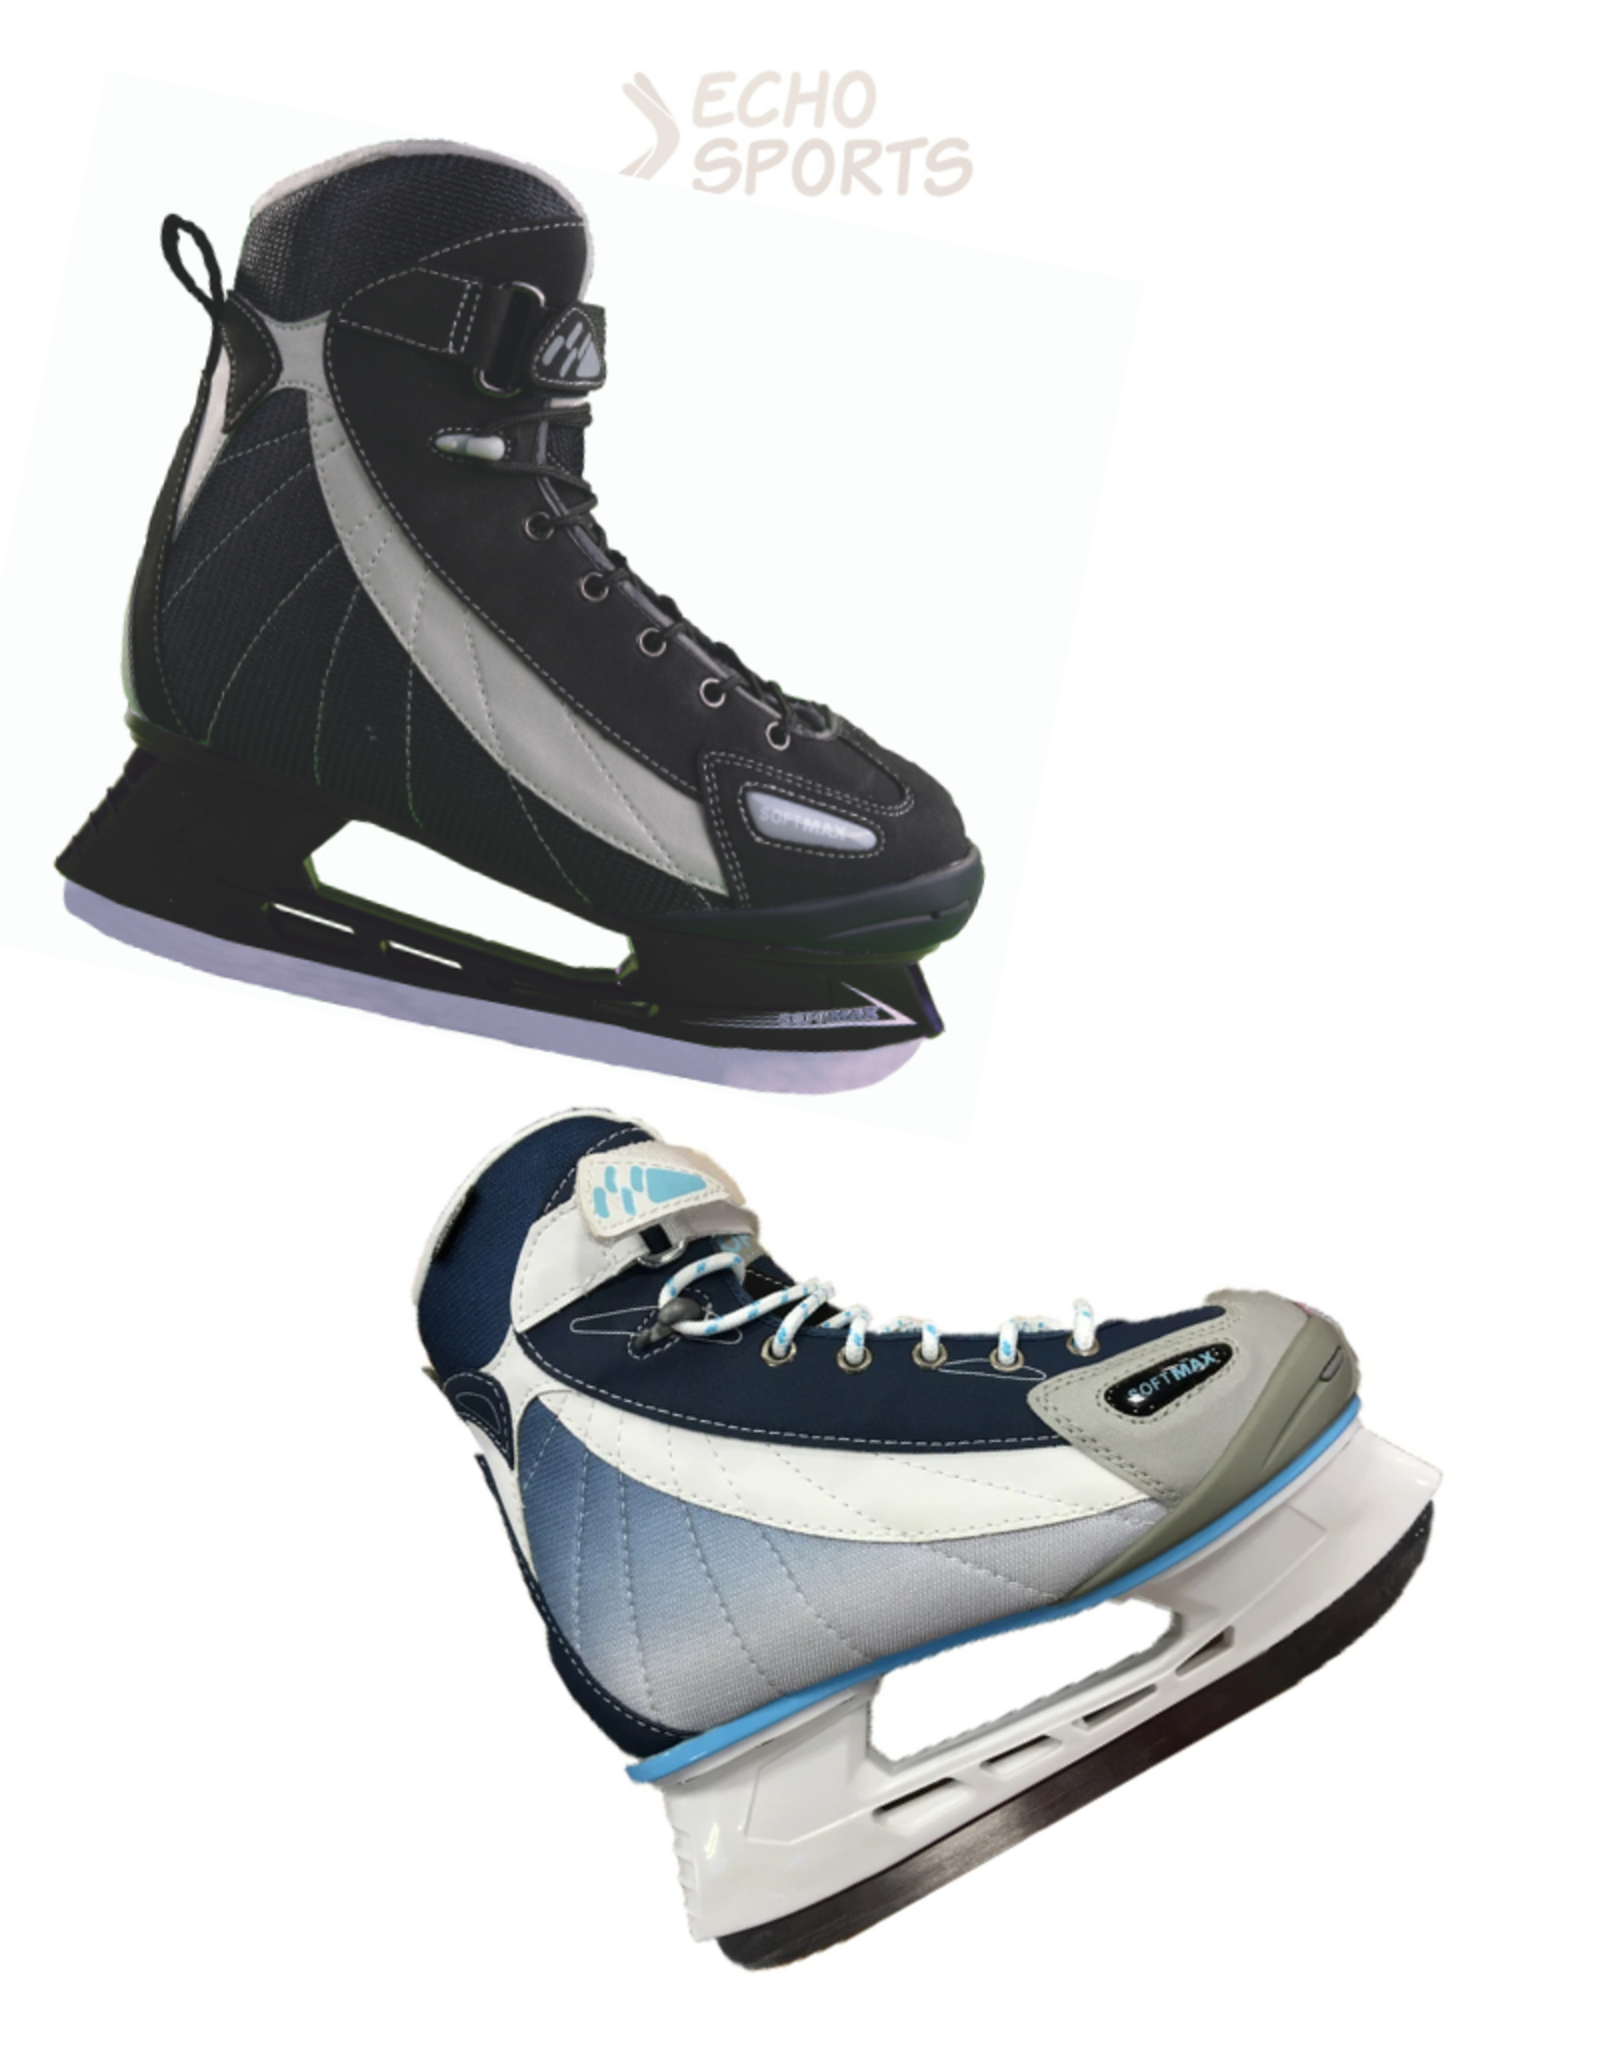 Patin à glace Softmax S-957